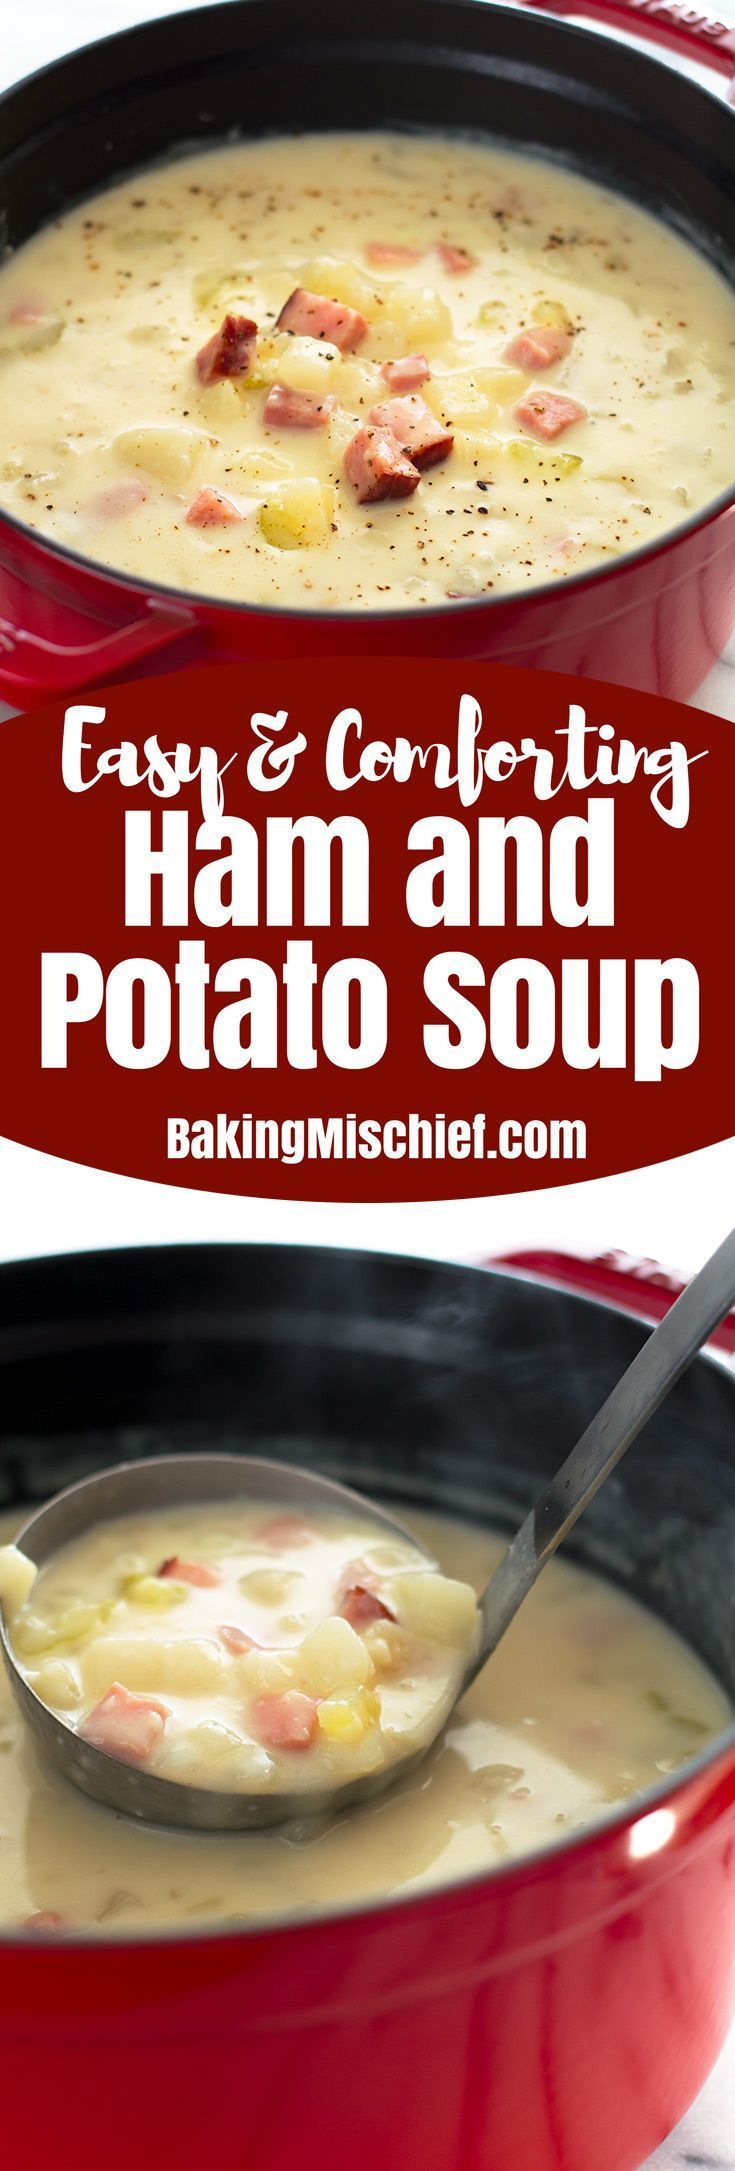 Healthy ham and potato soup is an easy, fast, and low-calorie dinner and one of my favorite busy weeknight meals. From http://BakingMischief.com